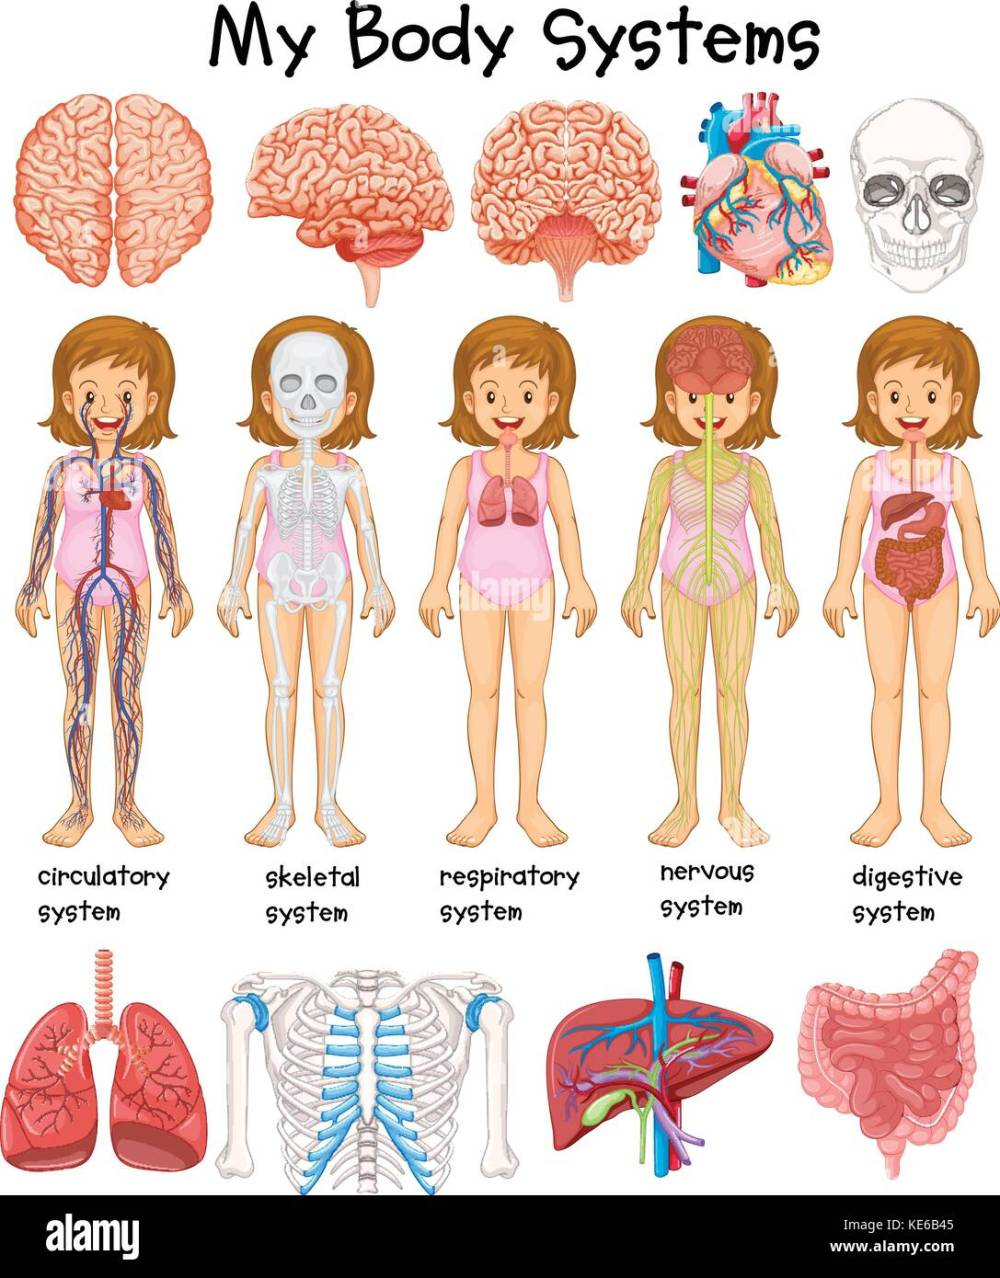 medium resolution of human body systems diagram illustration